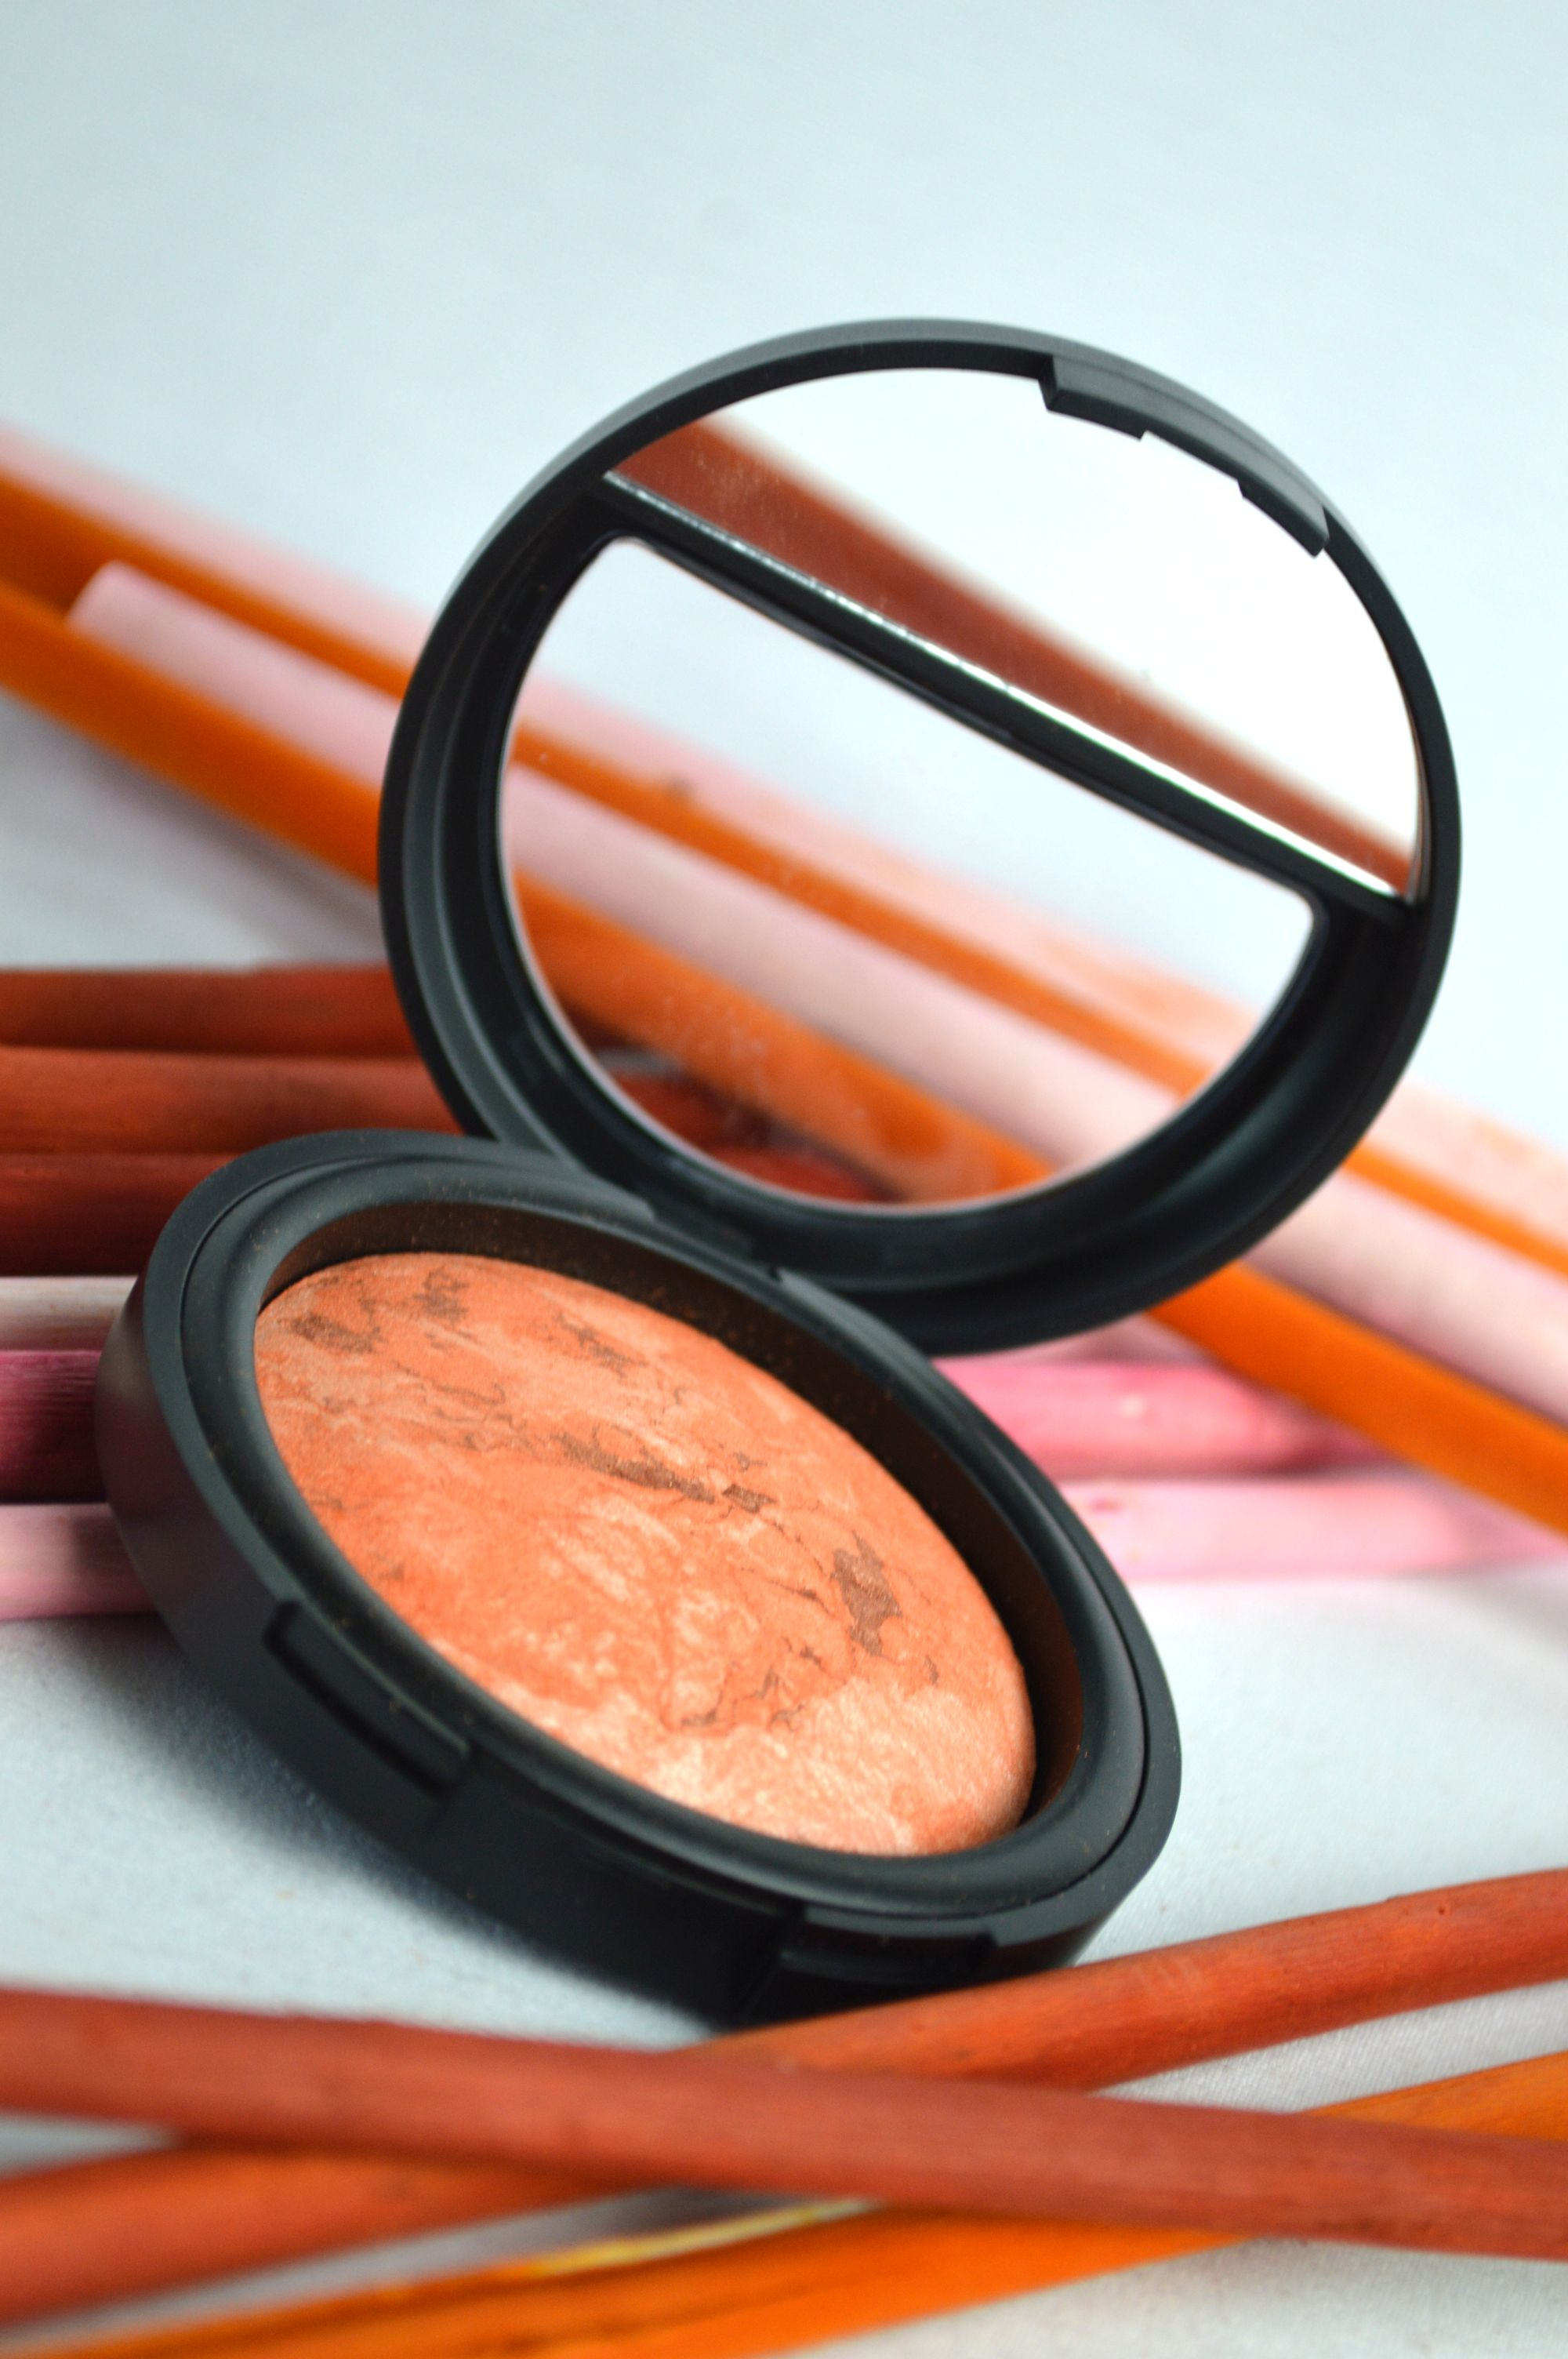 Flormar_Terracotta_Blush-on_46_Review